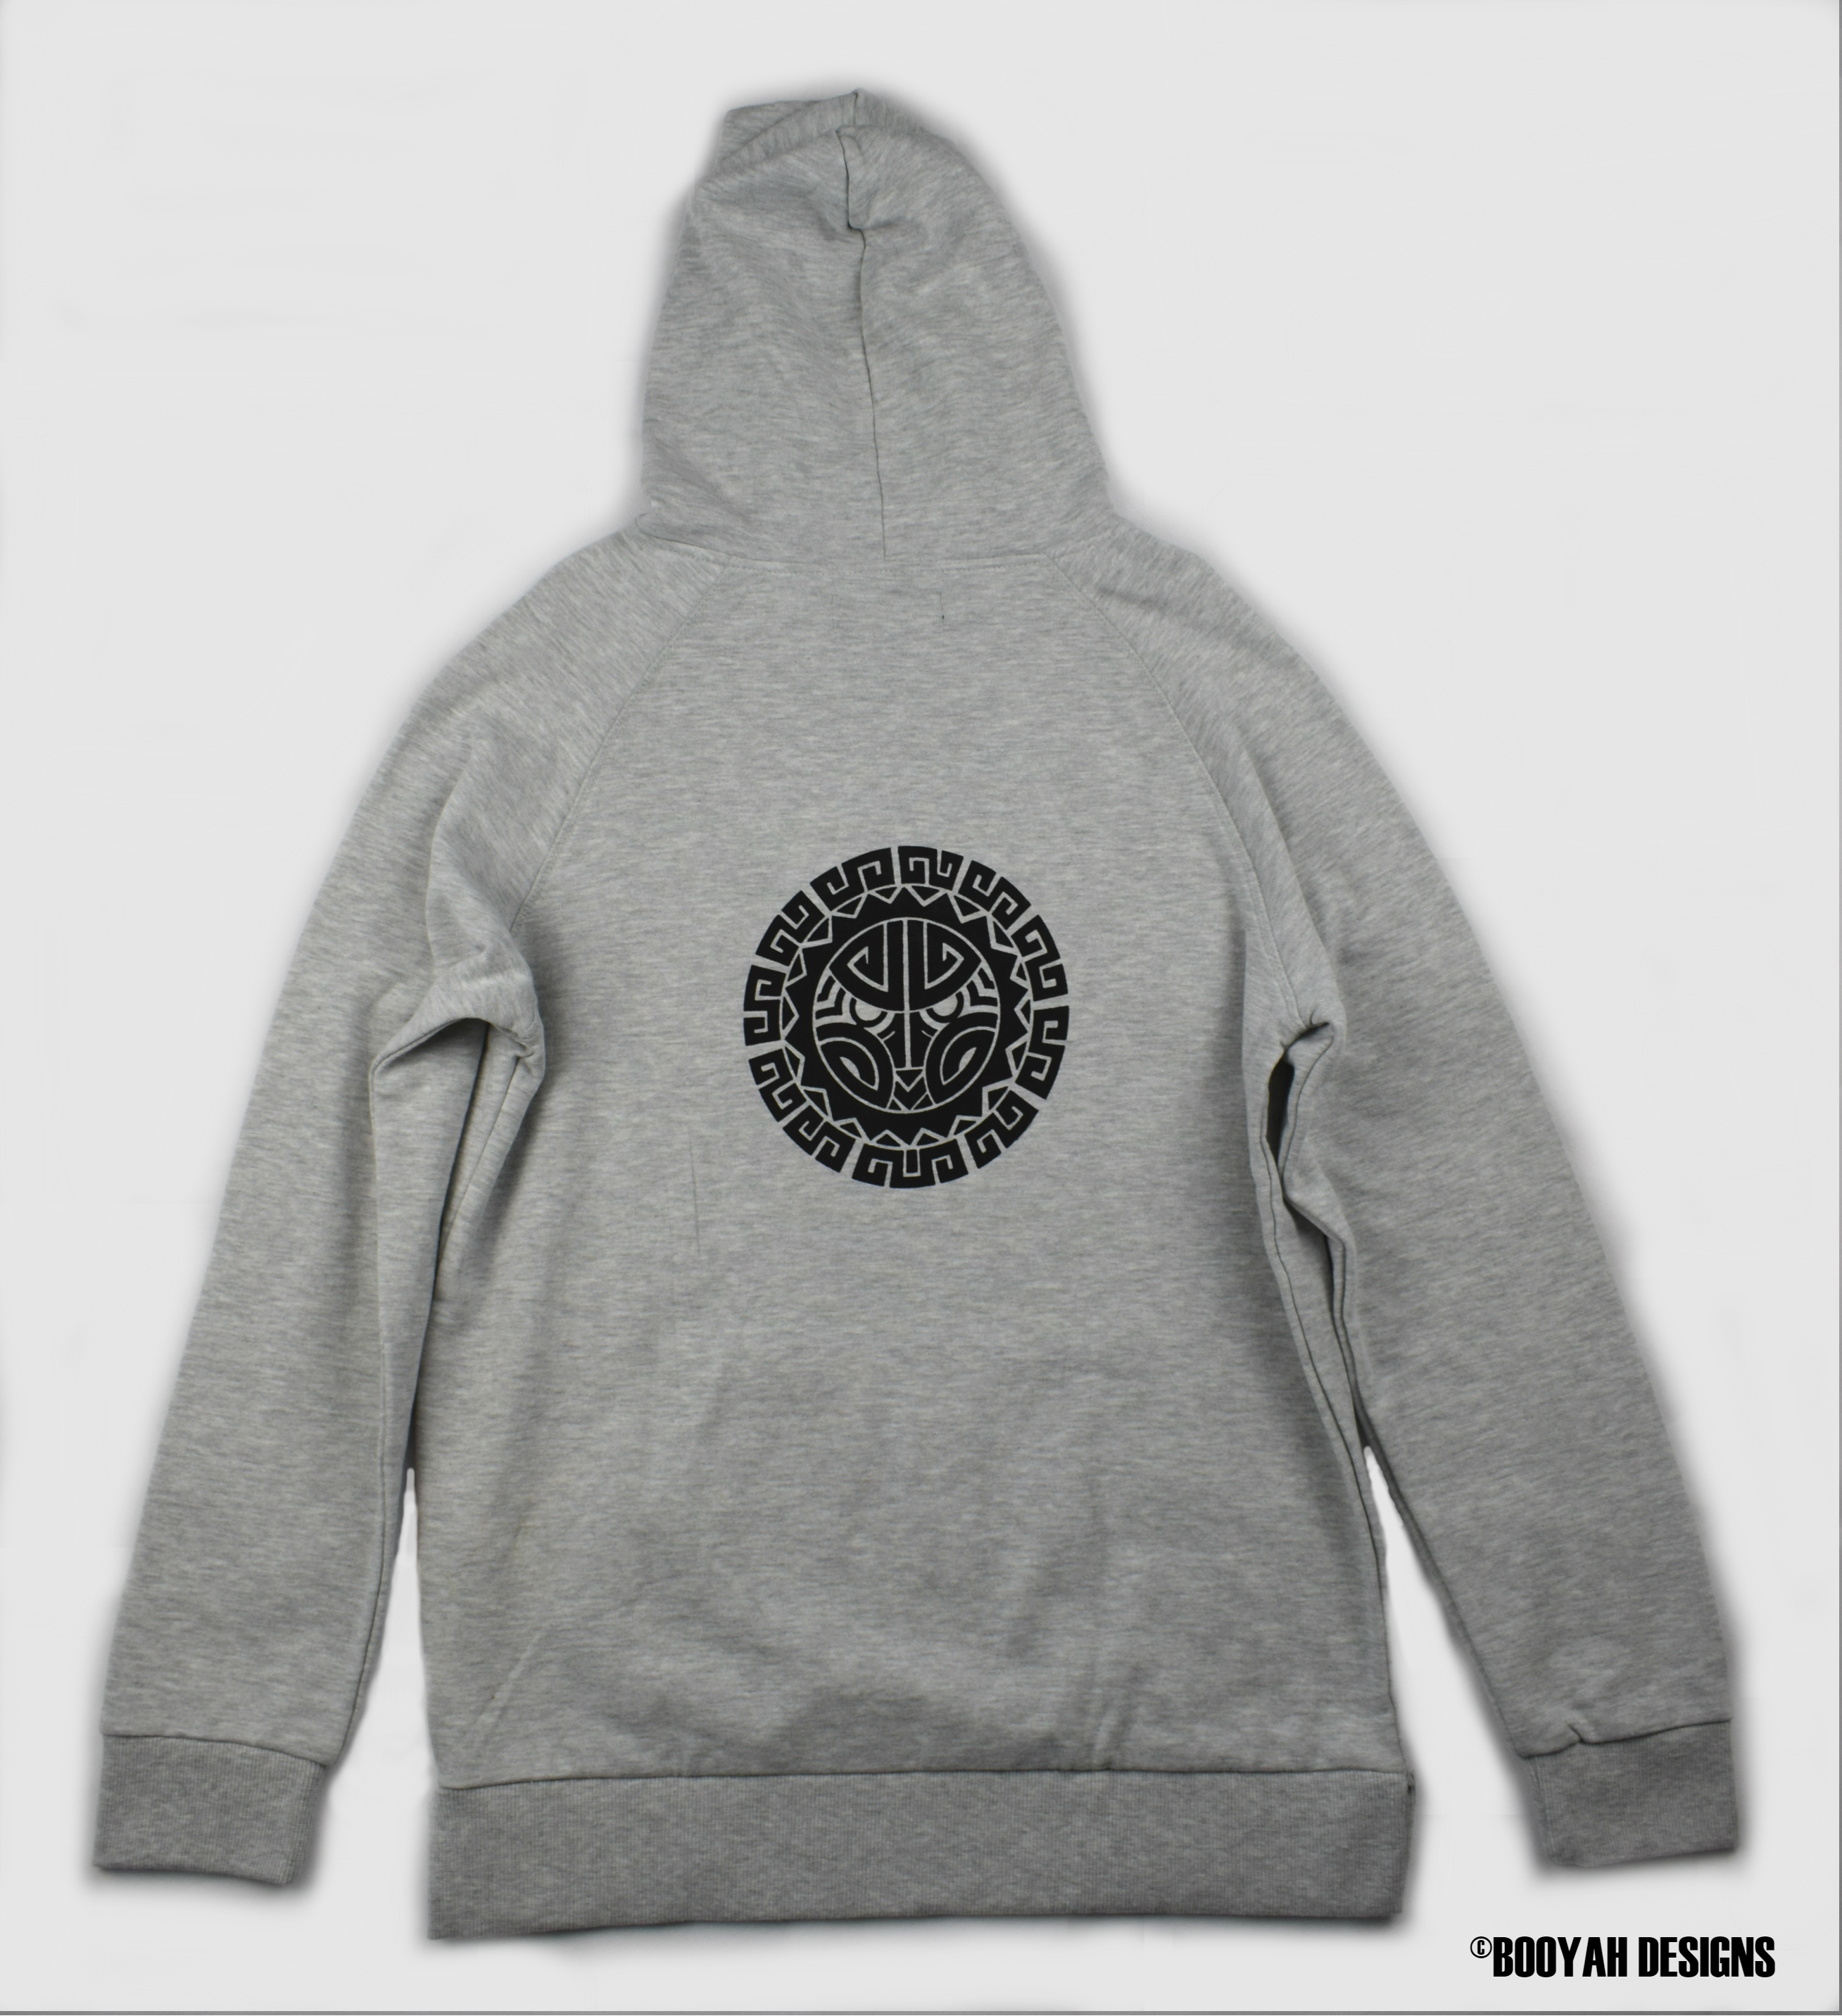 dd8e1d91a13 Limited Edition Booyah Designs Grey Hoodie on Storenvy